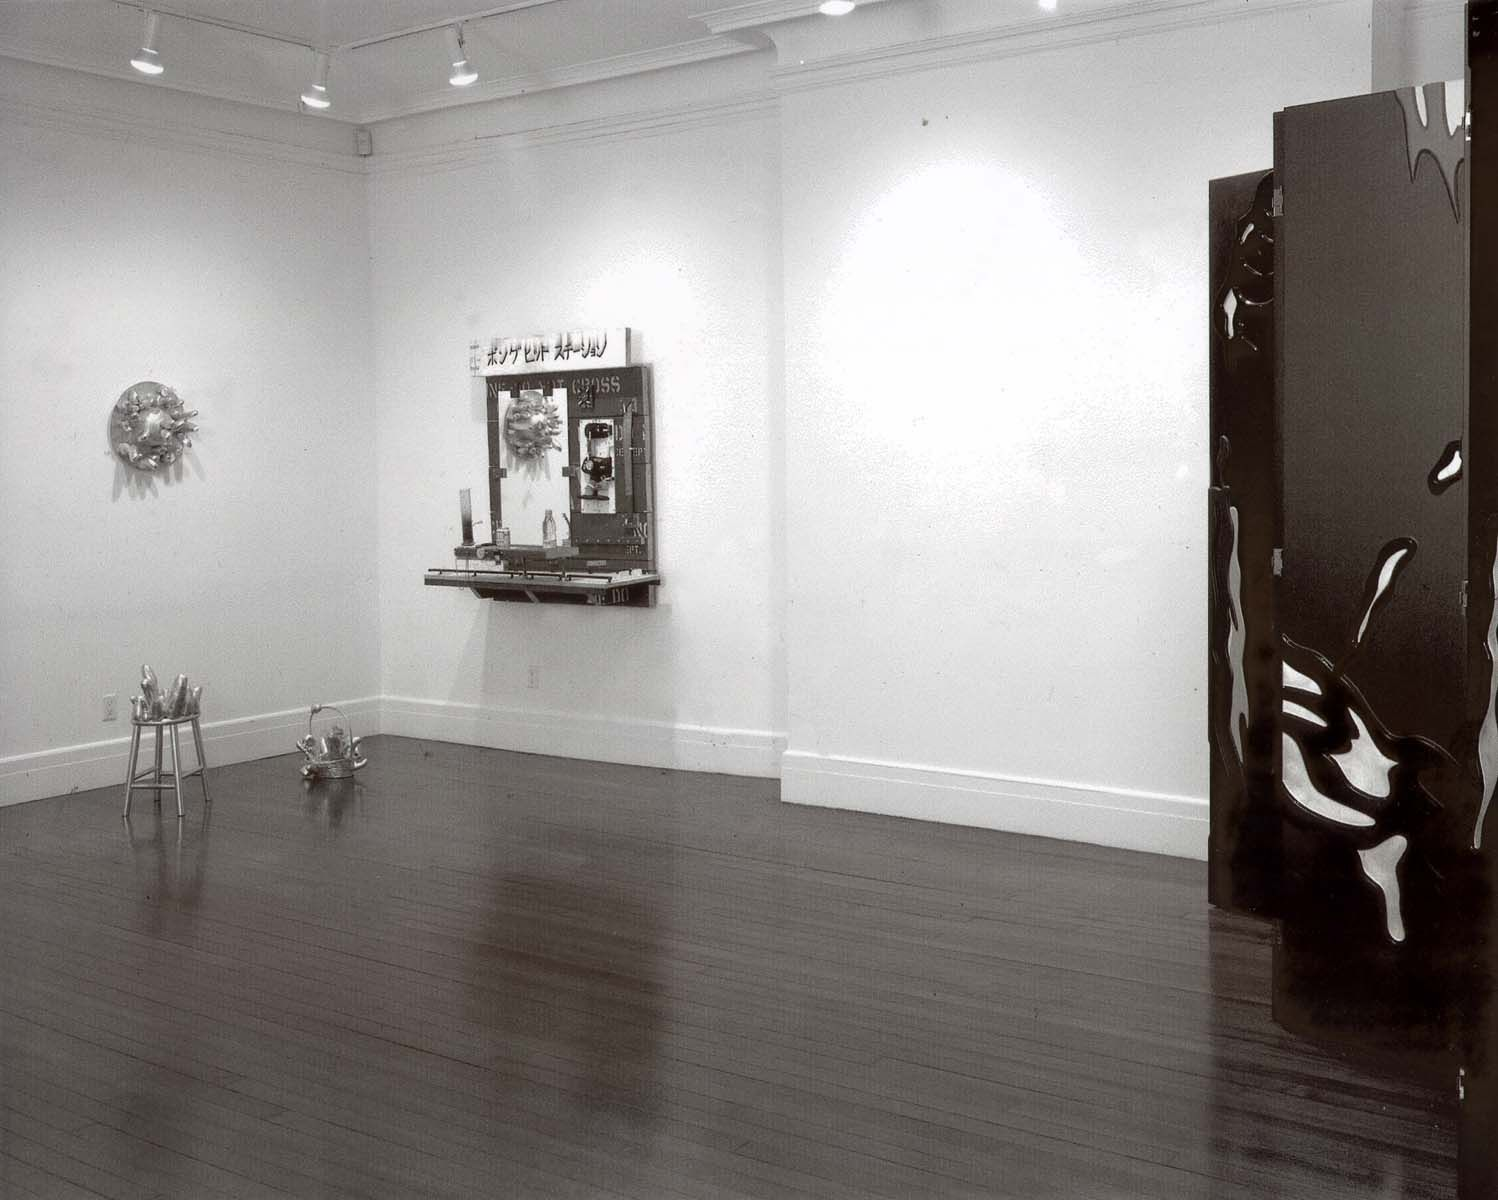 Installation view, Homestyle, 18 EAST 77.